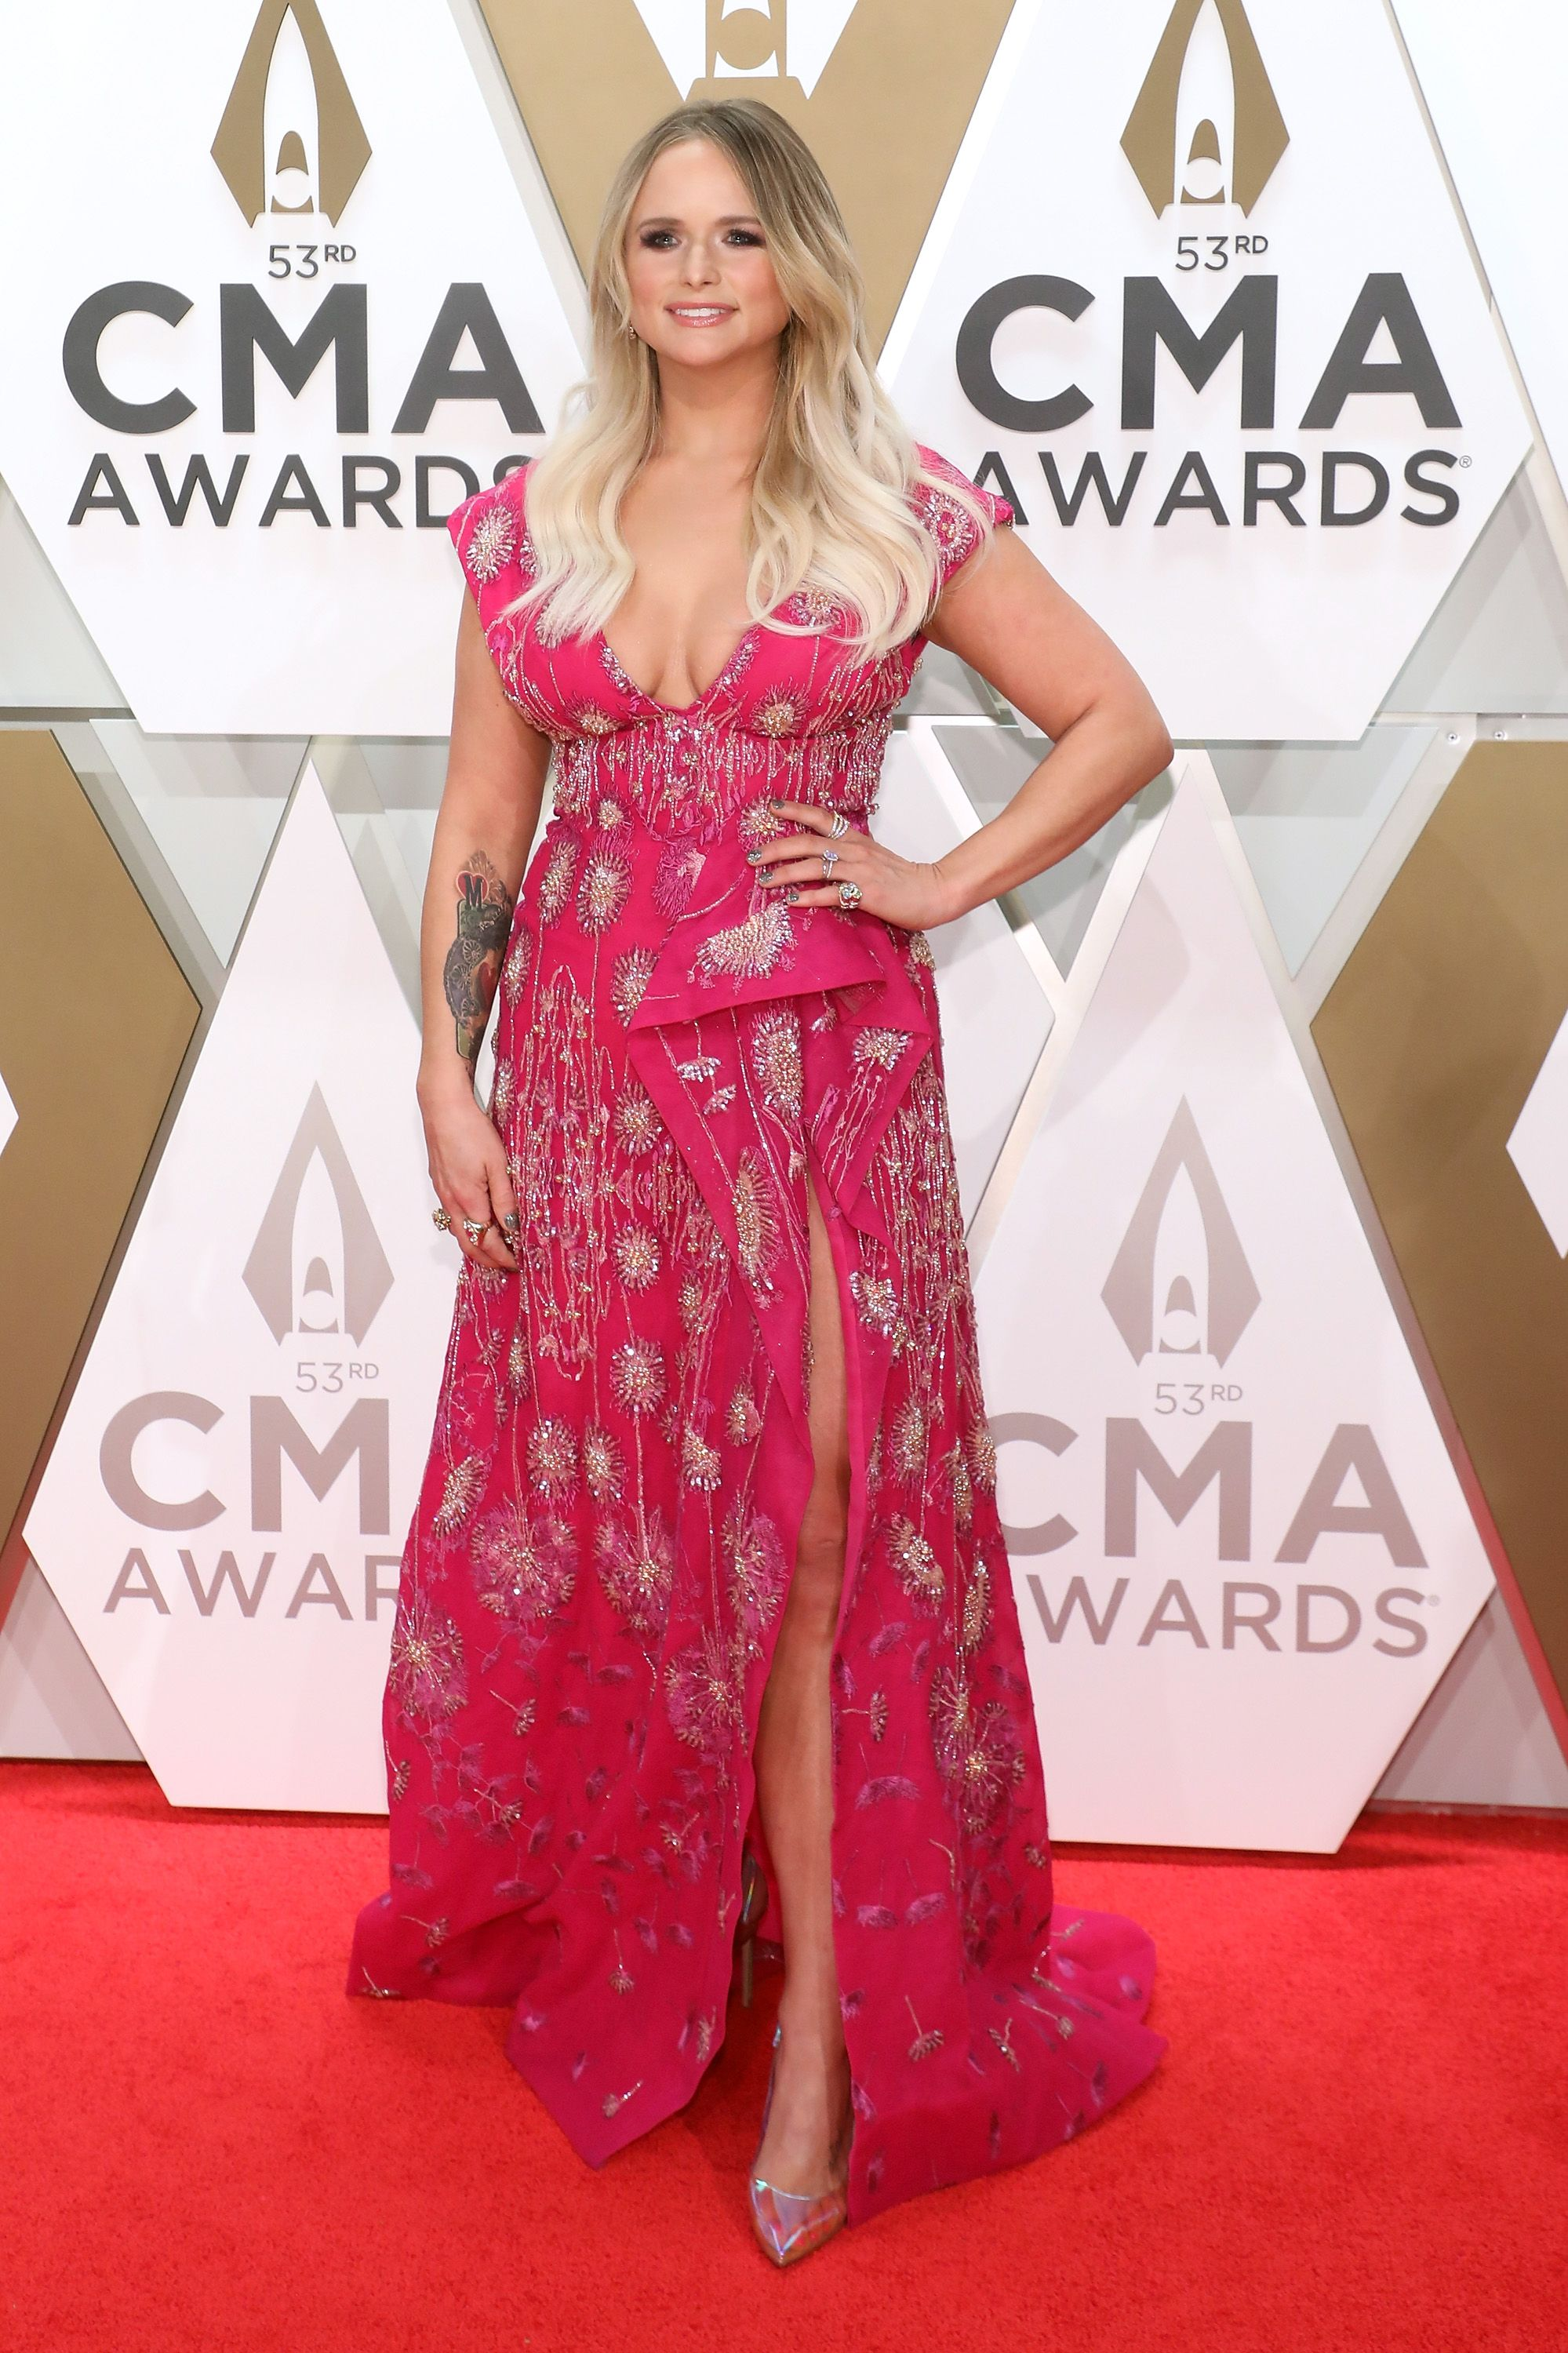 Miranda Lambert attends the 53rd annual CMA Awards at Bridgestone Arena on November 13, 2019, in Nashville, Tennessee. | Source: Getty Images